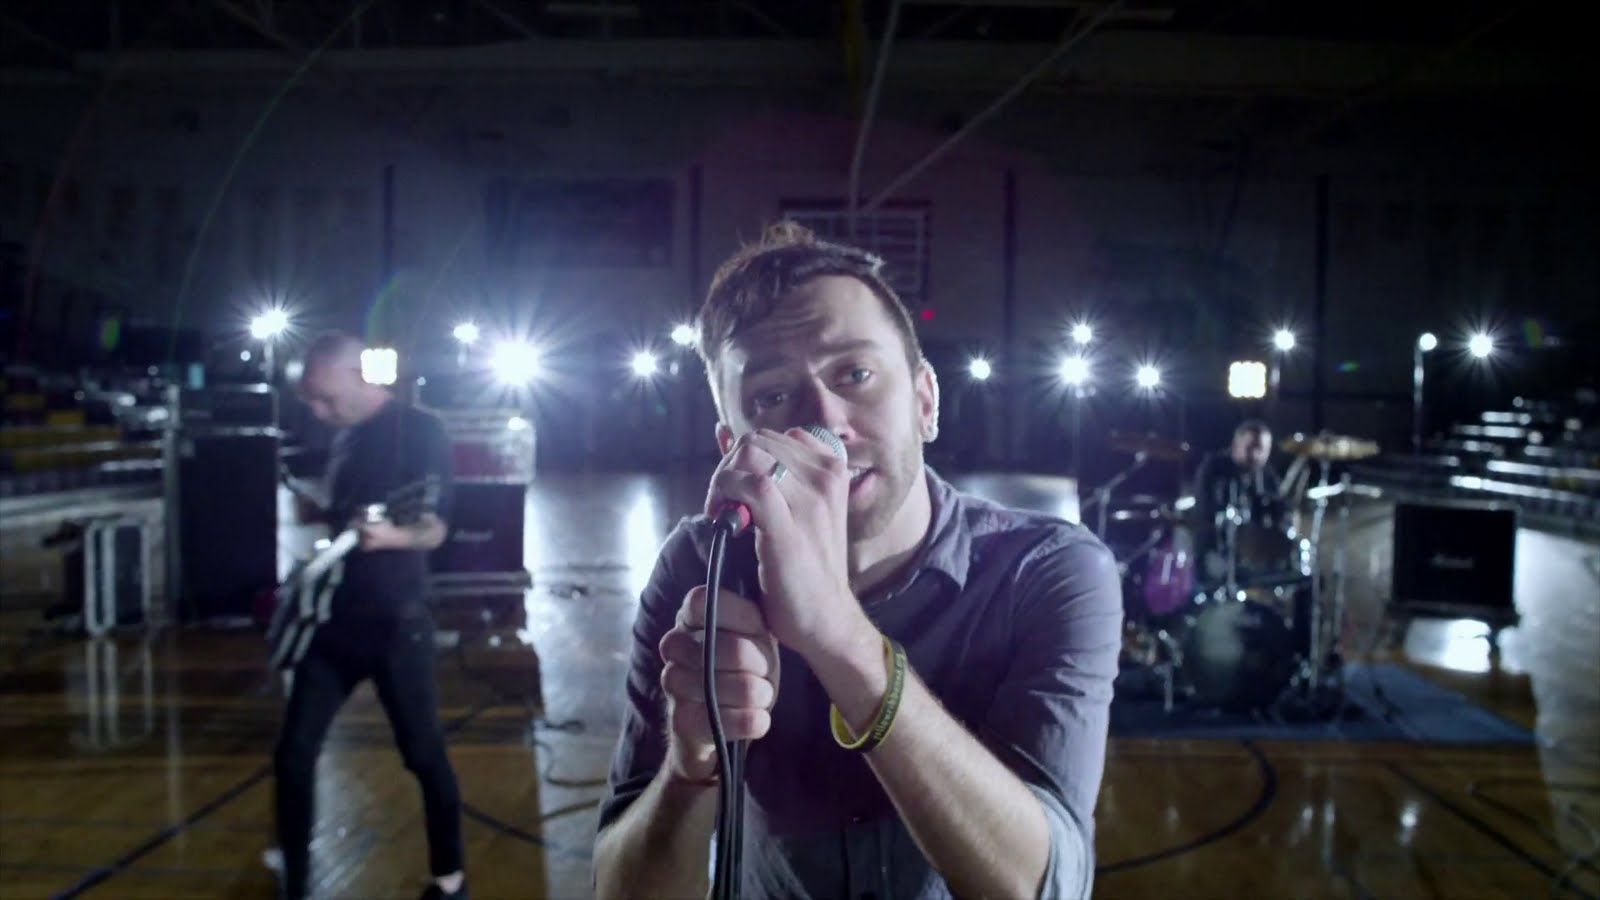 Tim McIlrath Makeitstop2